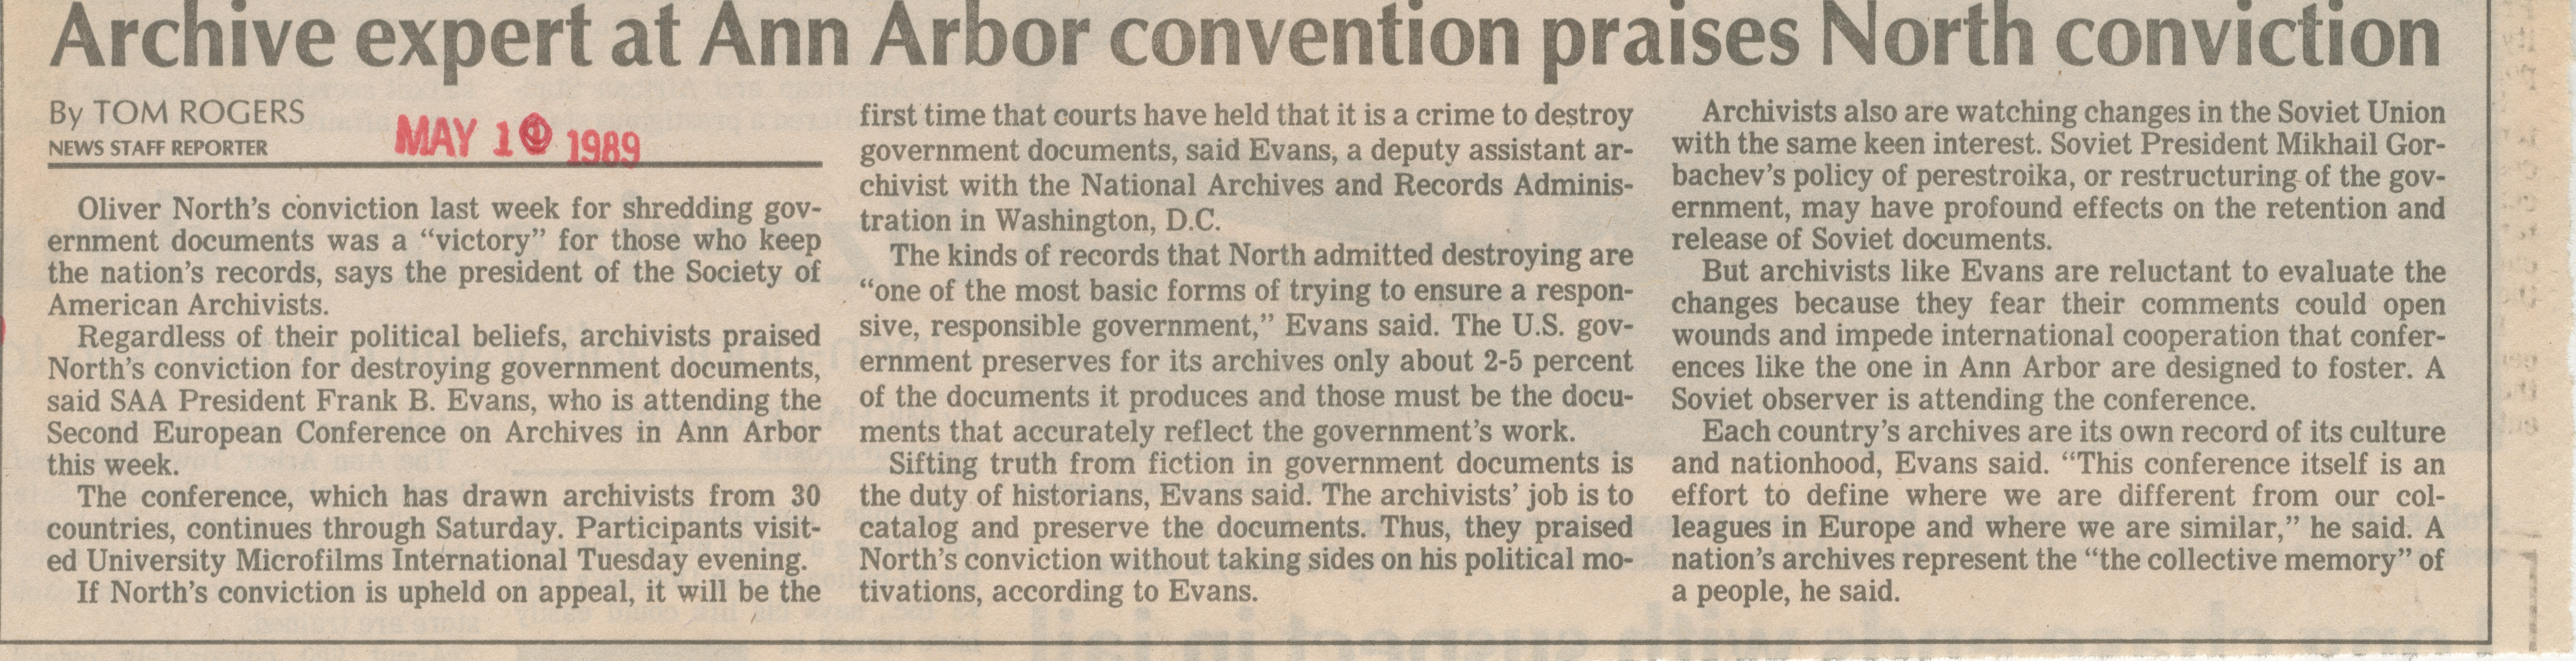 Archive Expert At Ann Arbor Convention Praises North Conviction  image